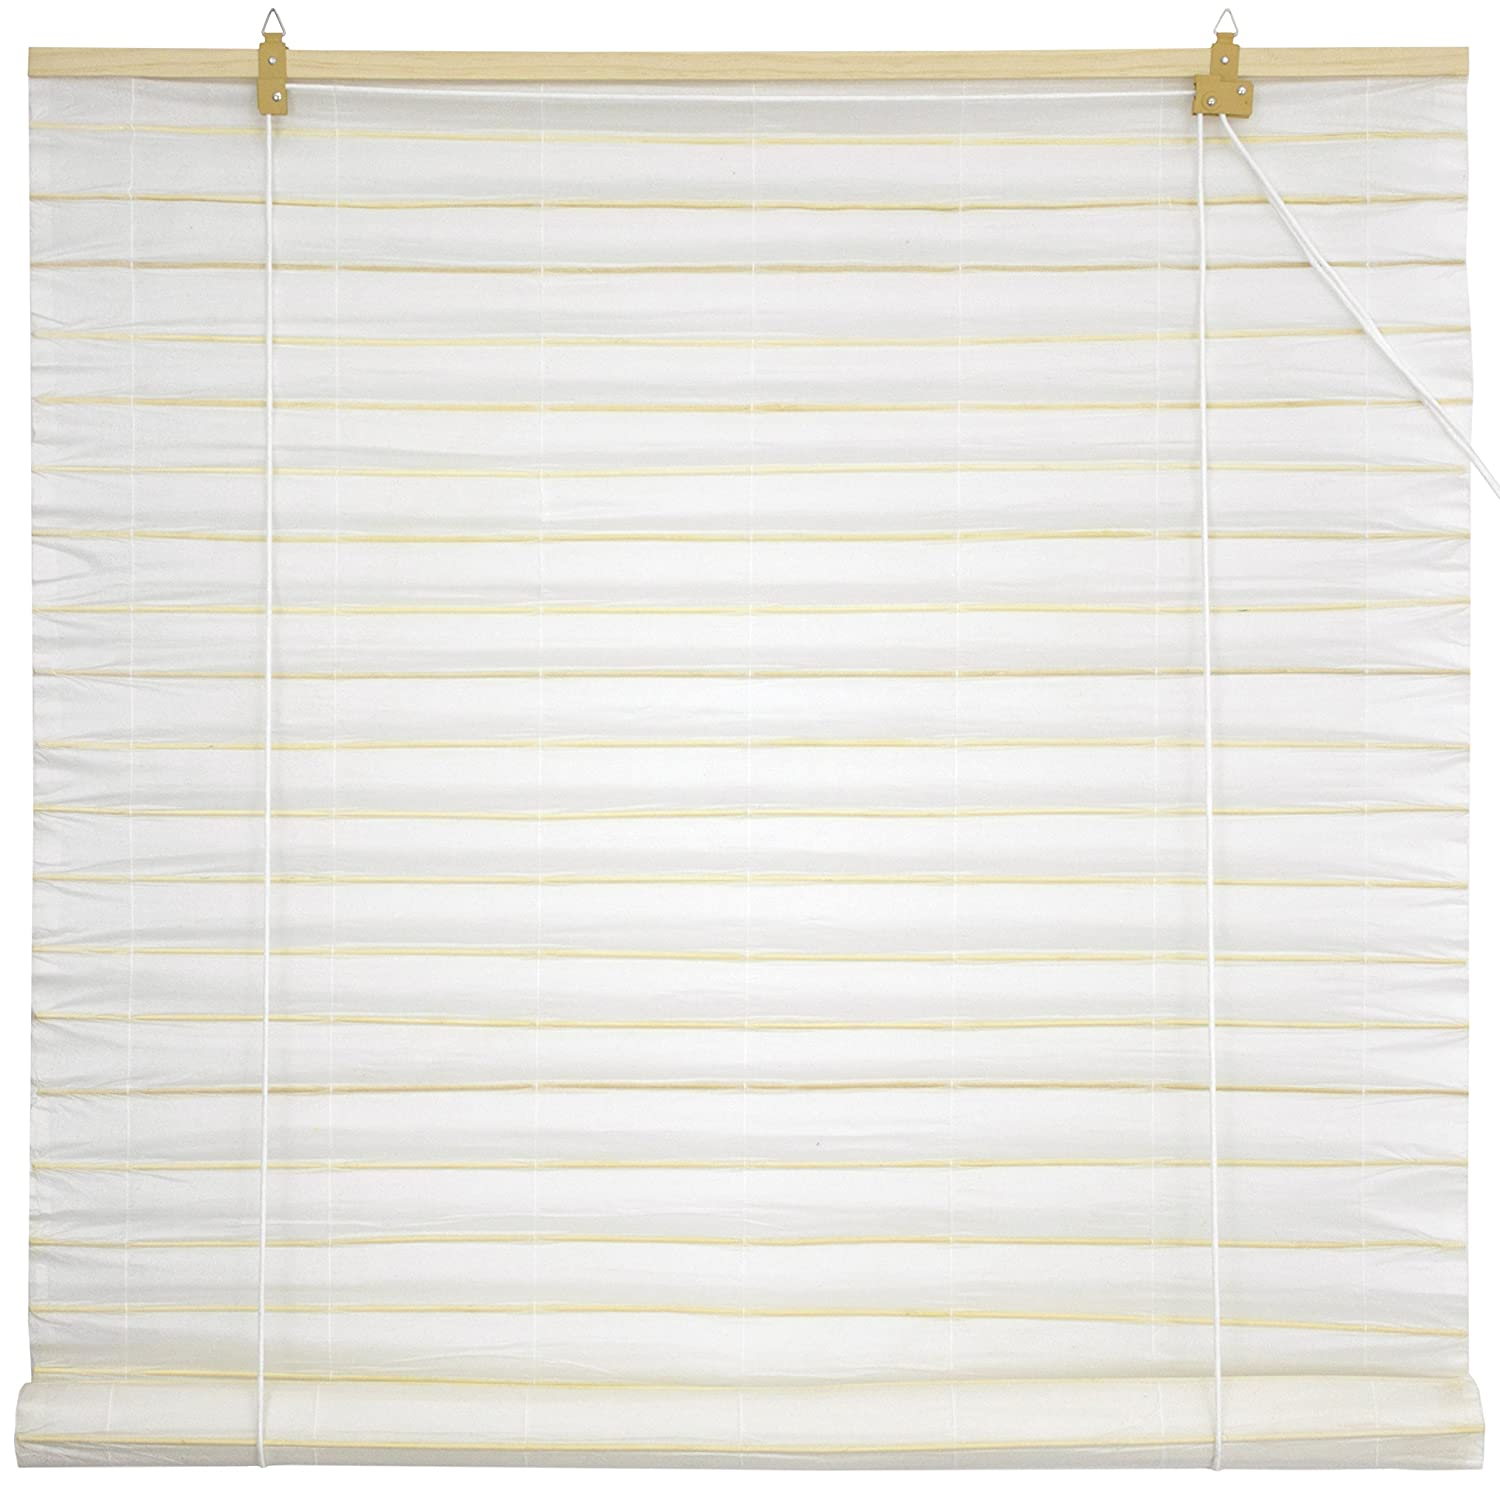 Oriental Furniture Shoji Paper Roll Up Blinds - White - (24 in. x 72 in.) WT-YJ1-9P-24W